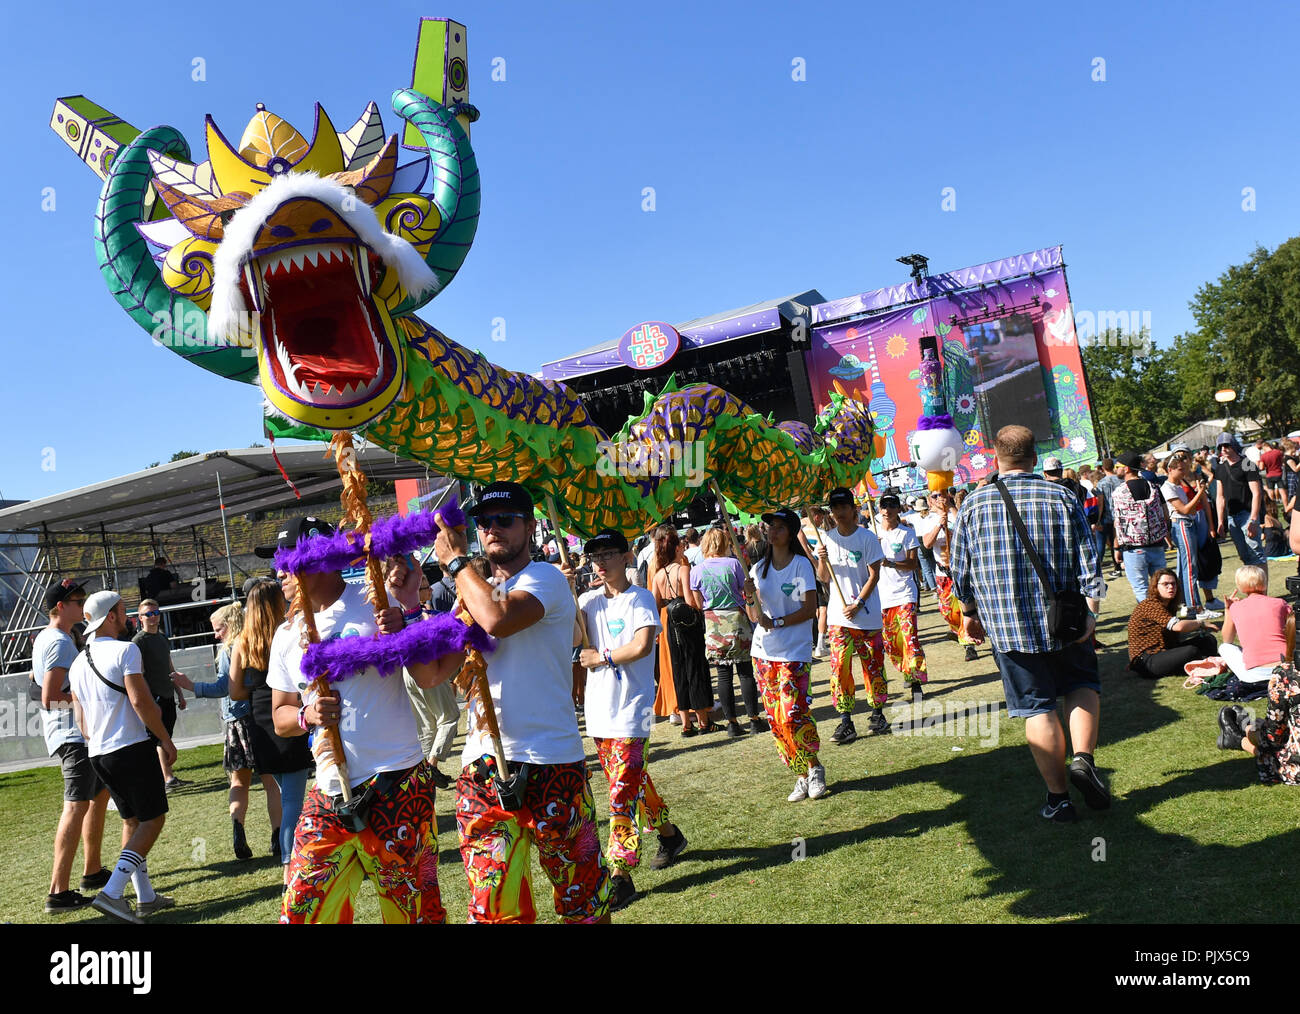 09.09.2018, Berlin: Performers wear a large colorful dragon figure at the two-day music festival Lollapalooza across the grounds of the Olympic Park. Photo: Jens Kalaene/dpa-Zentralbild/dpa - Stock Image